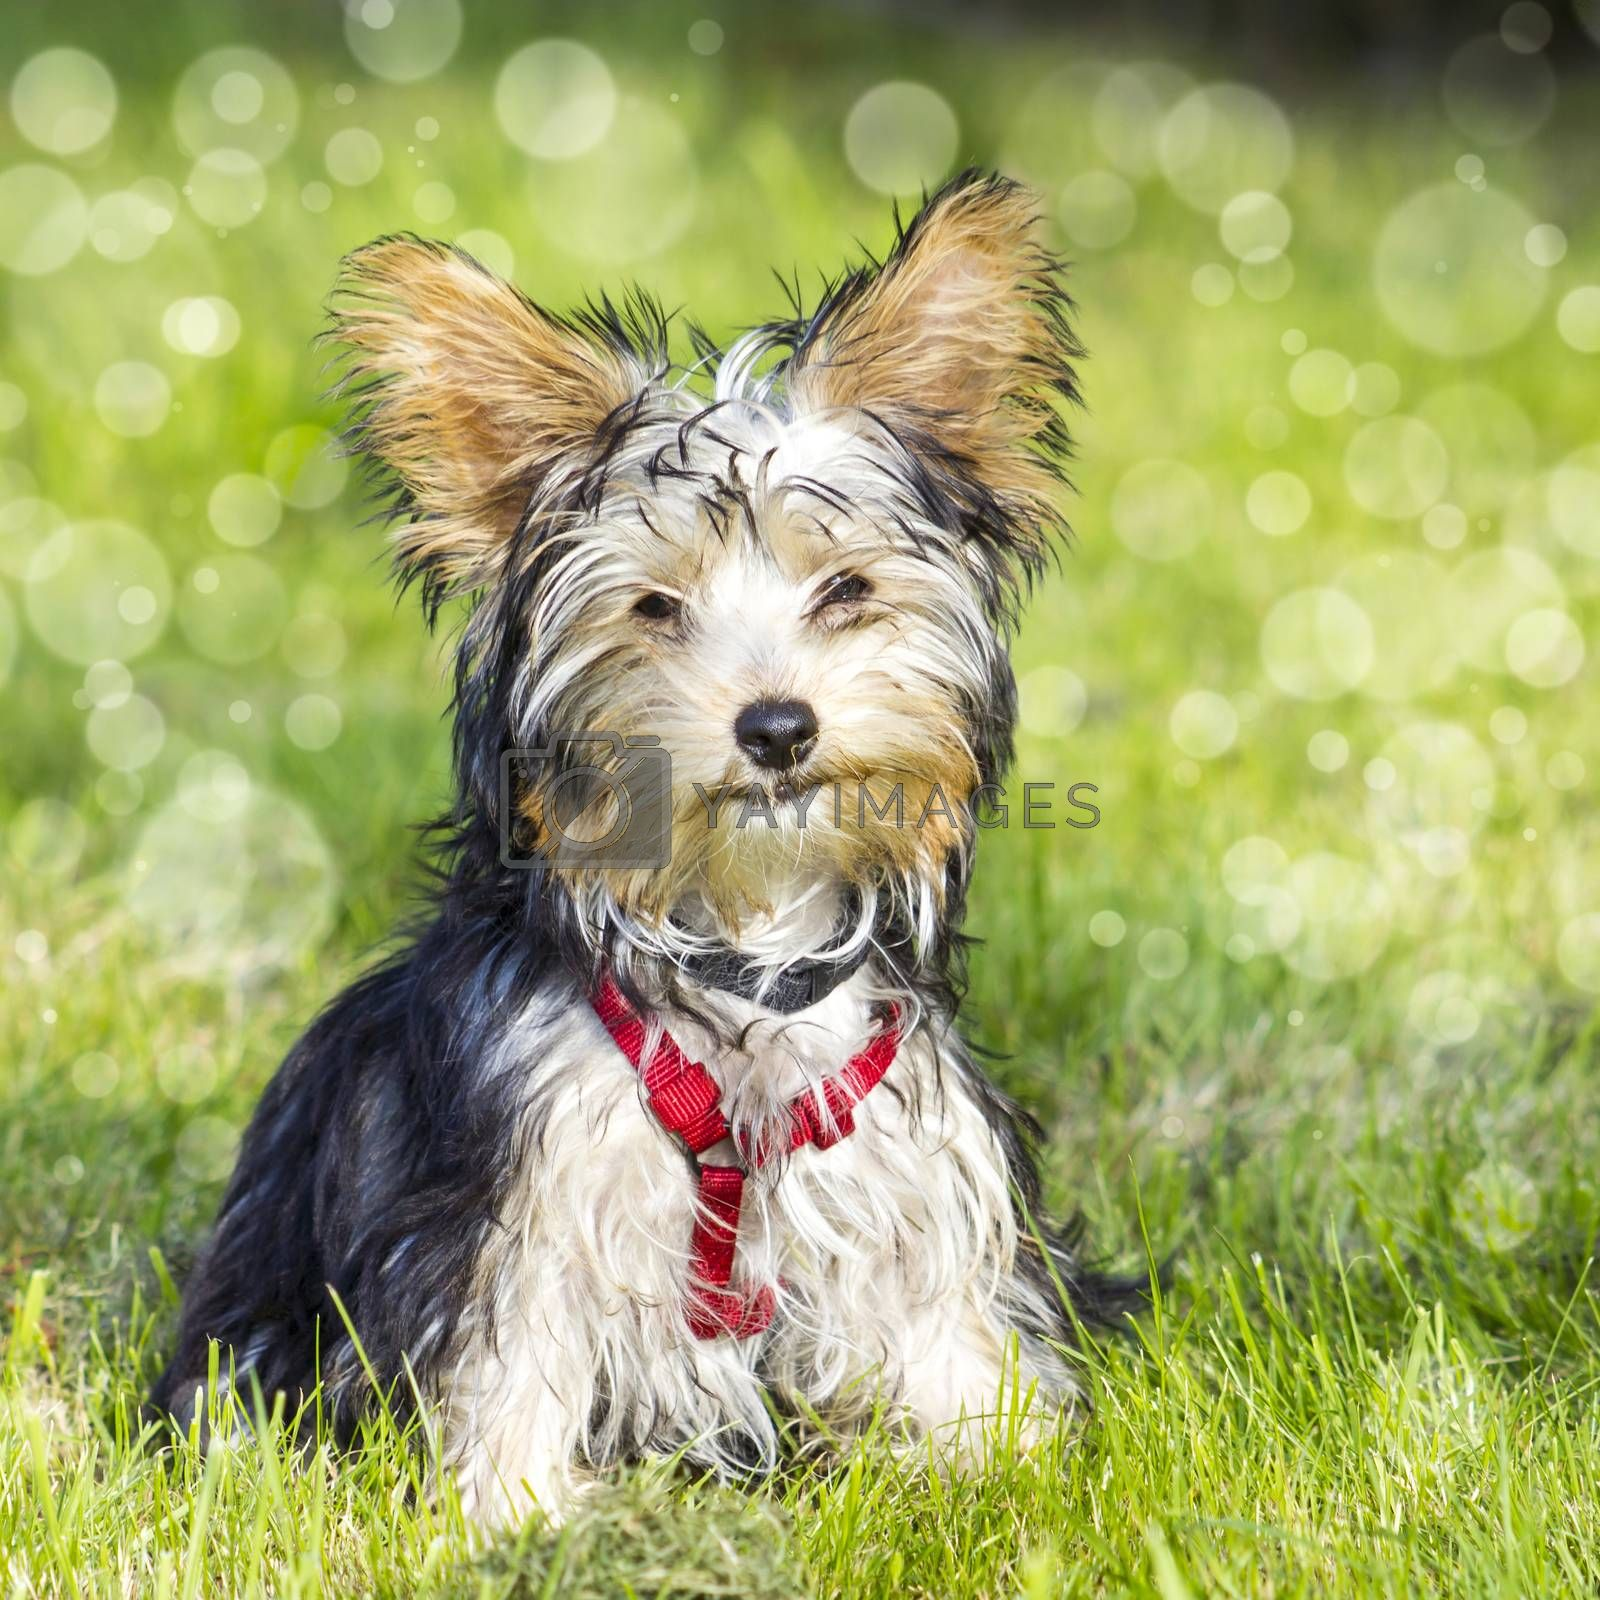 Royalty free image of yorkshire terrier by miradrozdowski